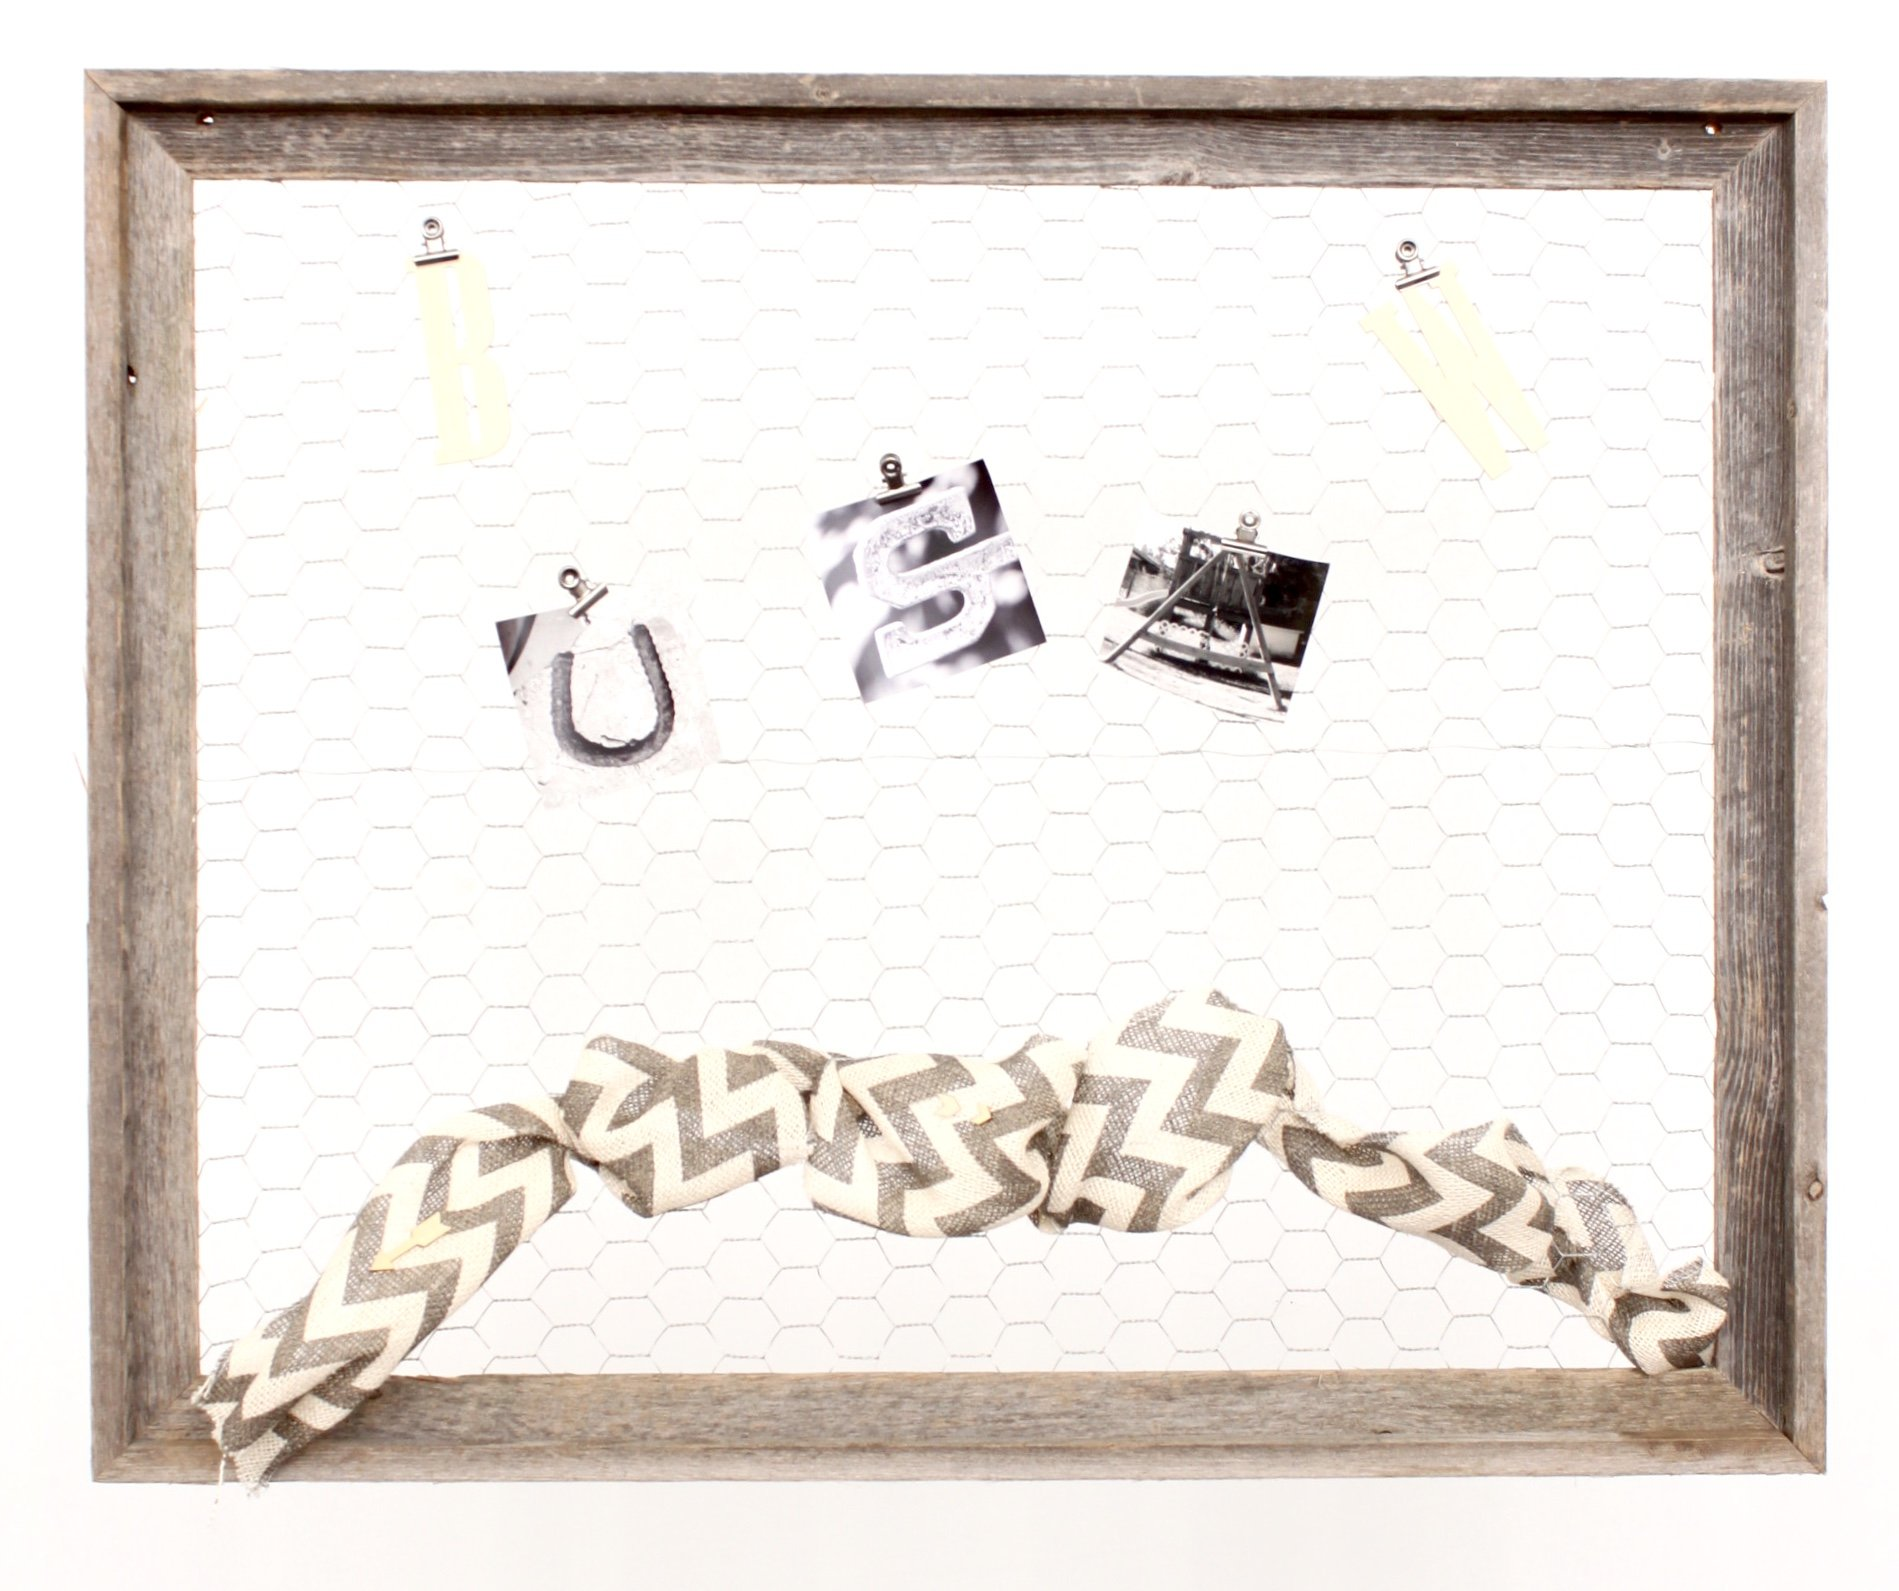 BarnwoodUSA   Chicken Wire Photo or Message Board, Jewelry Organizer - 10 Clothes Pins Included - 100% Up-Cycled Reclaimed Wood Frame (24 x 28 Frame) by BarnwoodUSA (Image #2)